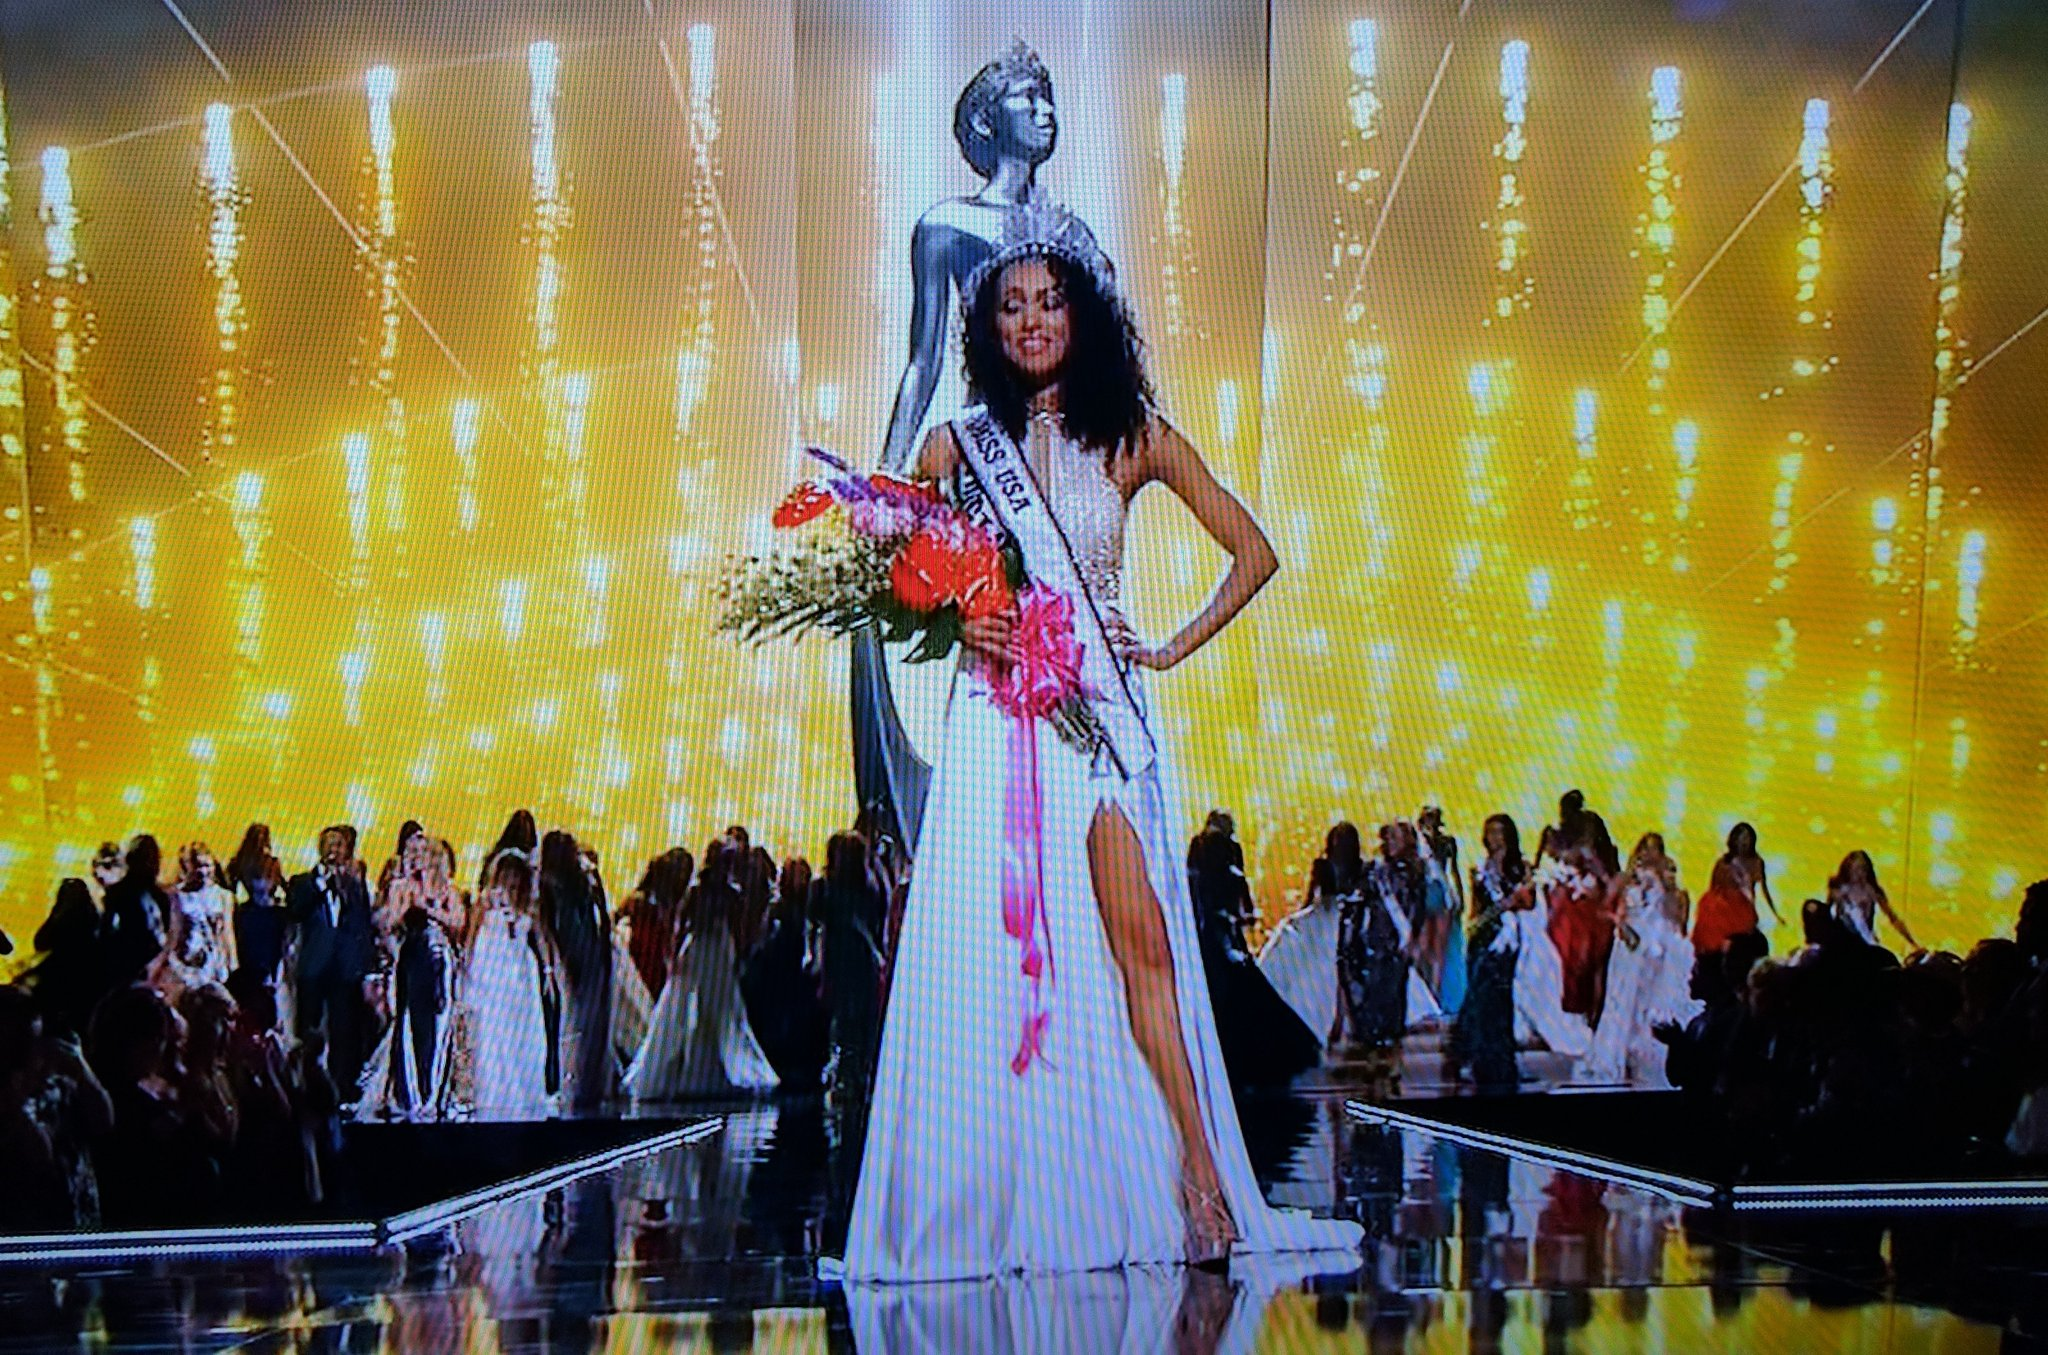 Yeah!!! Congratulations to #missdistrictofcolumbia #KaraMcCullough our new #MissUSA !!!! #missusa2017 https://t.co/n4h19uKmAq